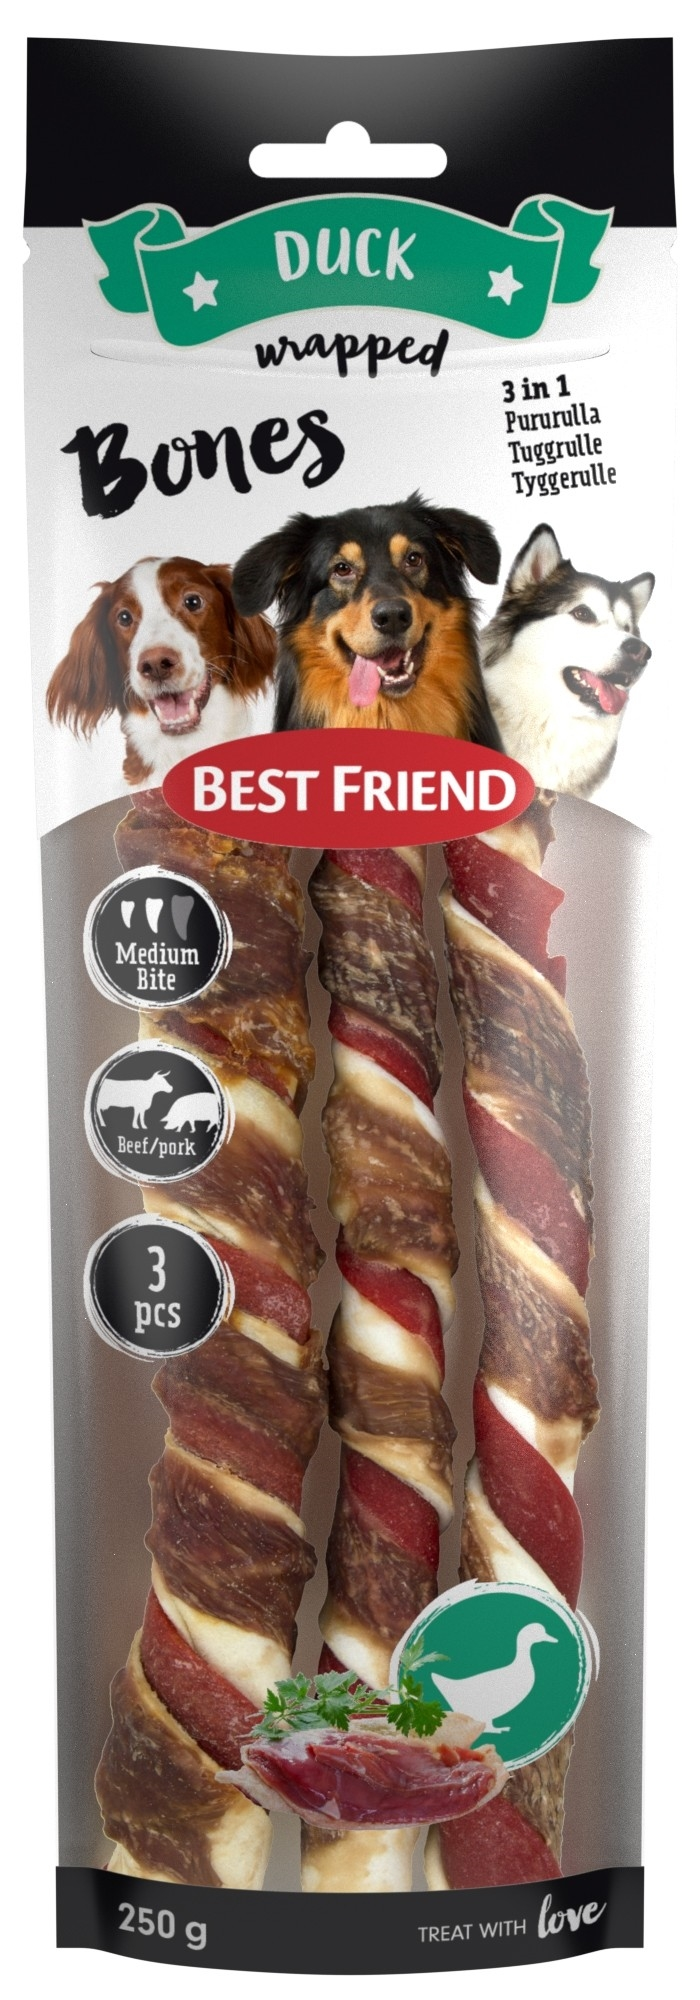 Best Friend Bones 250g 3 st medium